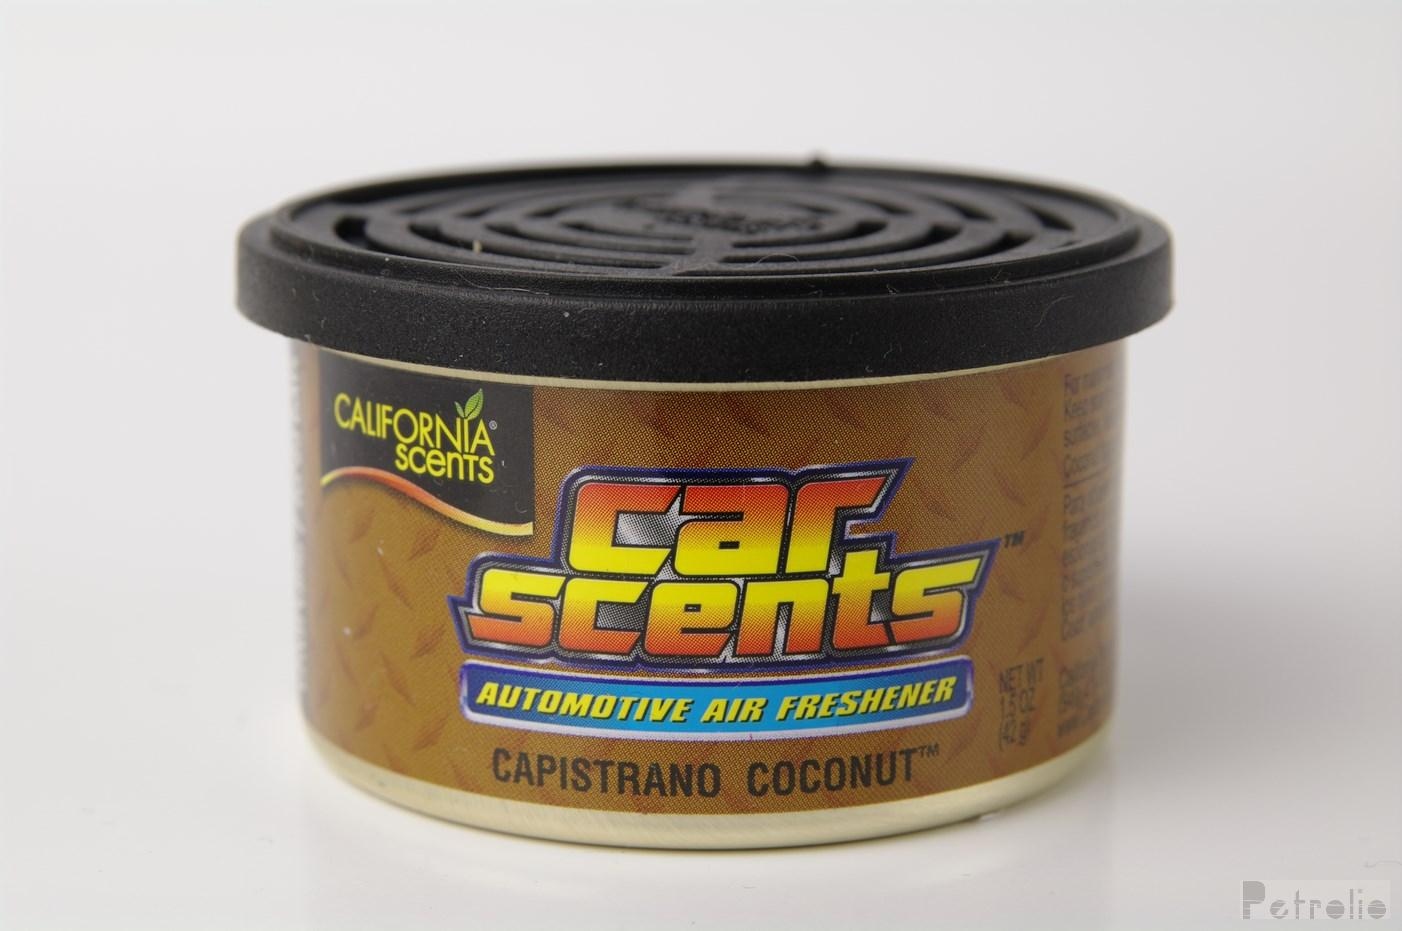 California Scents Car Scents - Kokos (Capistrano Coconut)  42 g